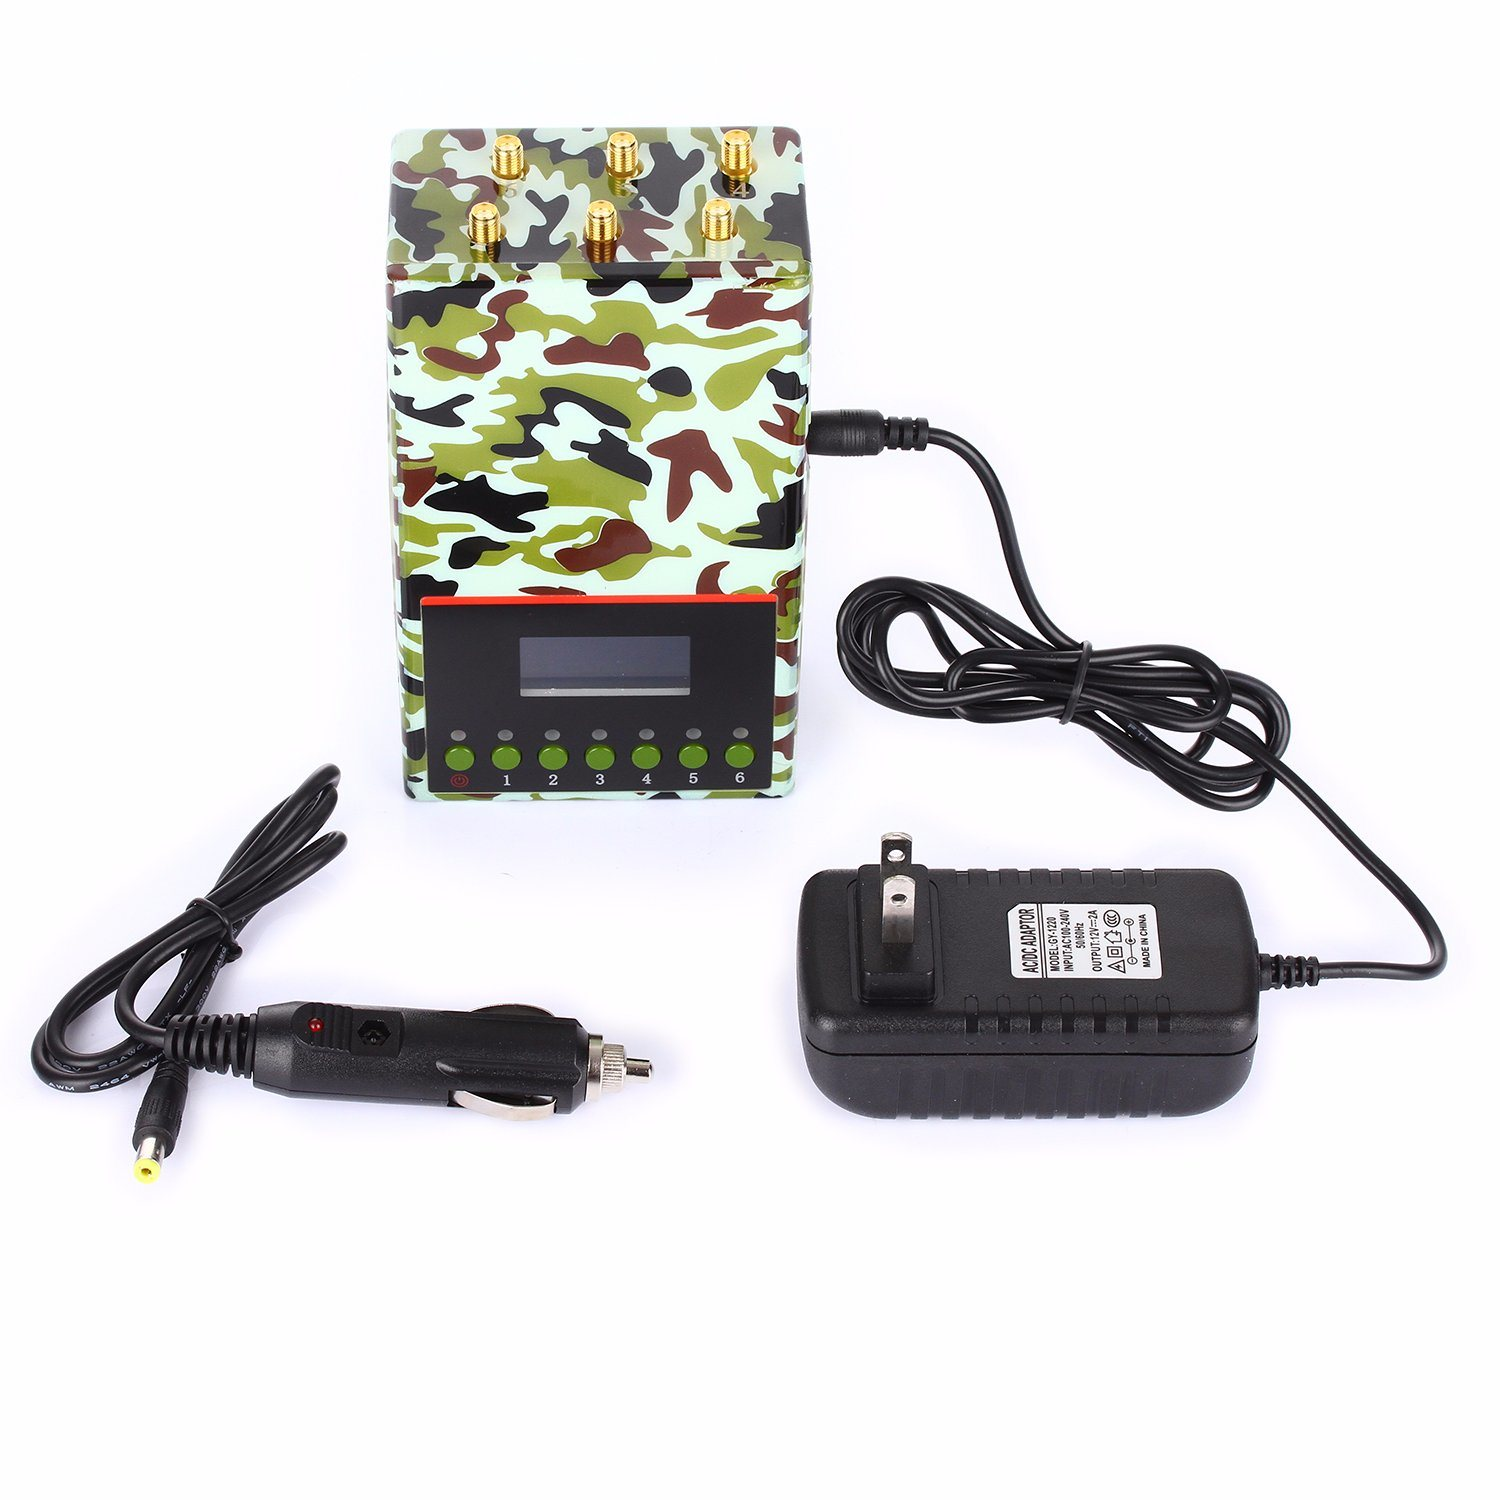 Portable Jammer LCD Display Block Cell Phone Signal 2g/3G/4G